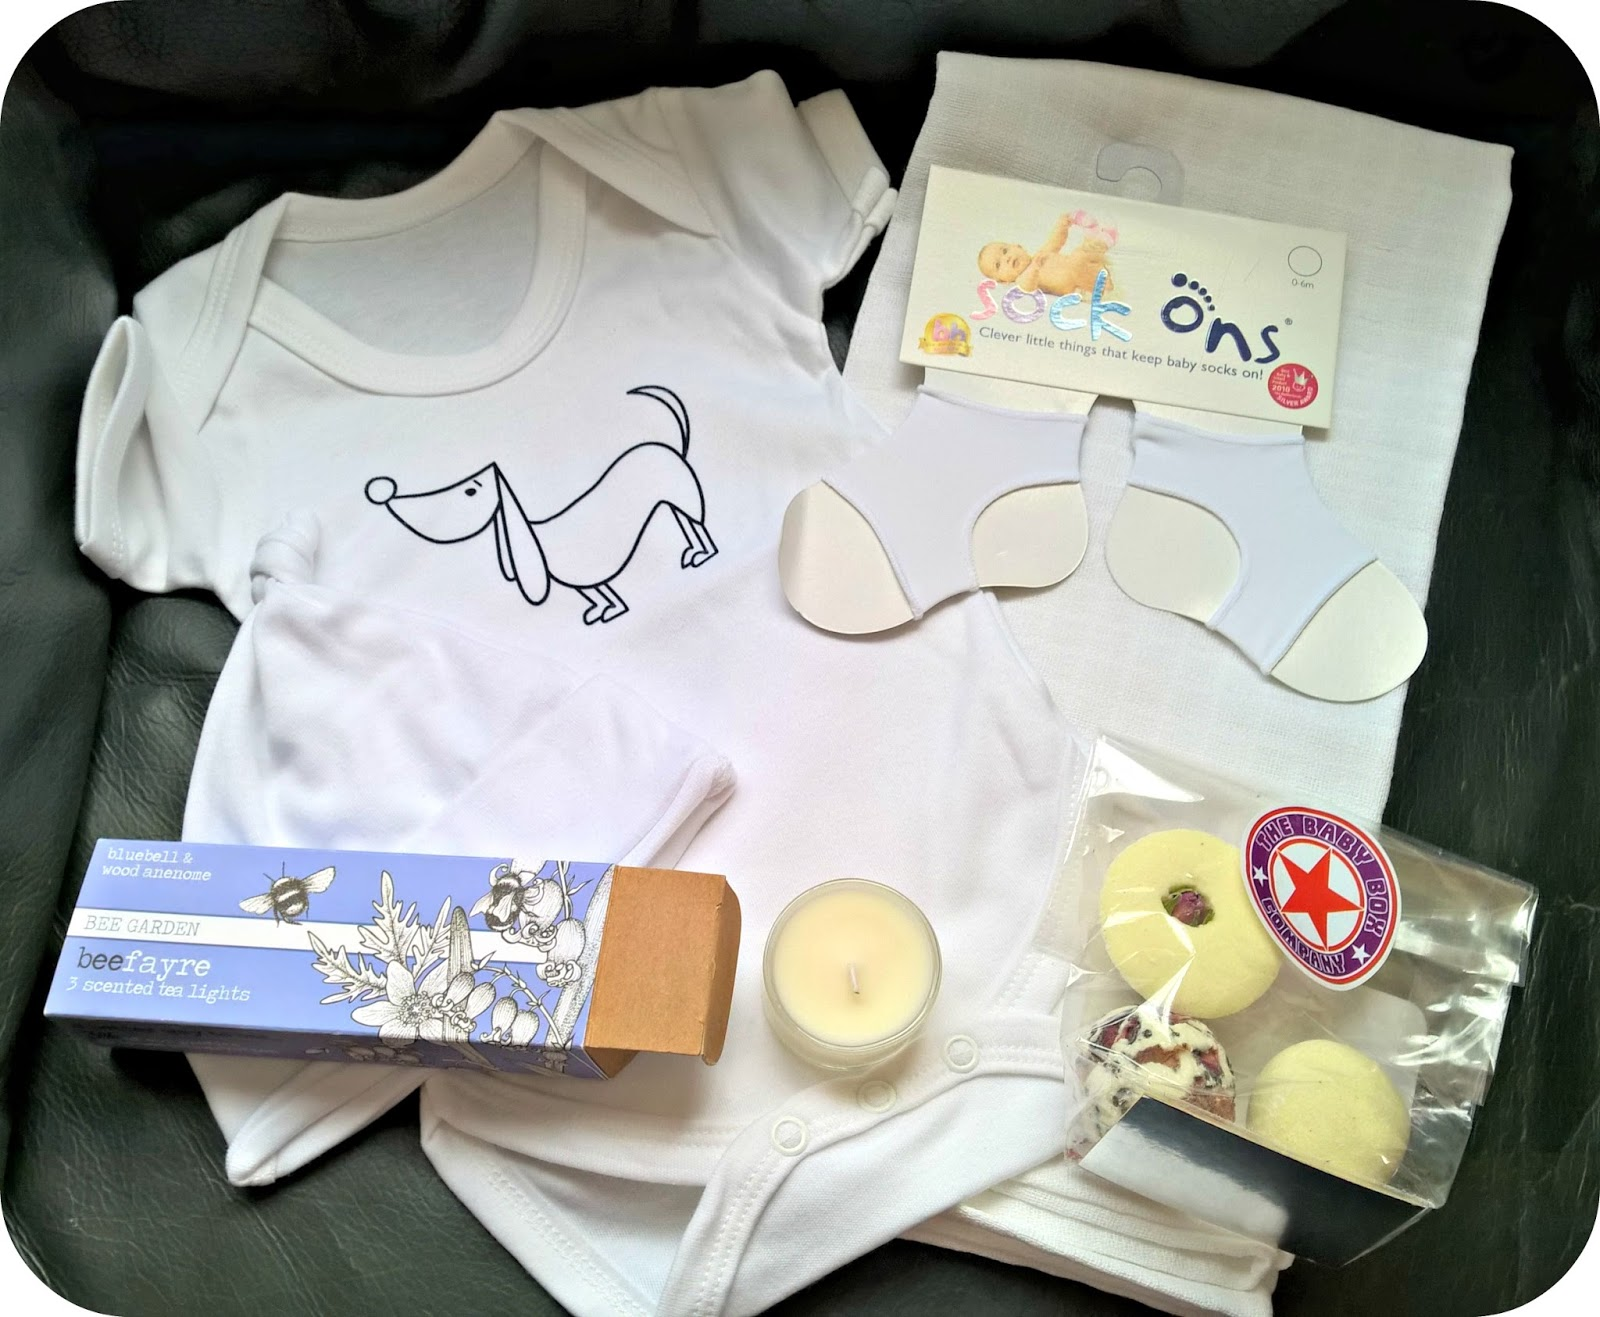 Beautiful New Baby Gifts from the Baby Box Company - Pure White Medium Box Contents